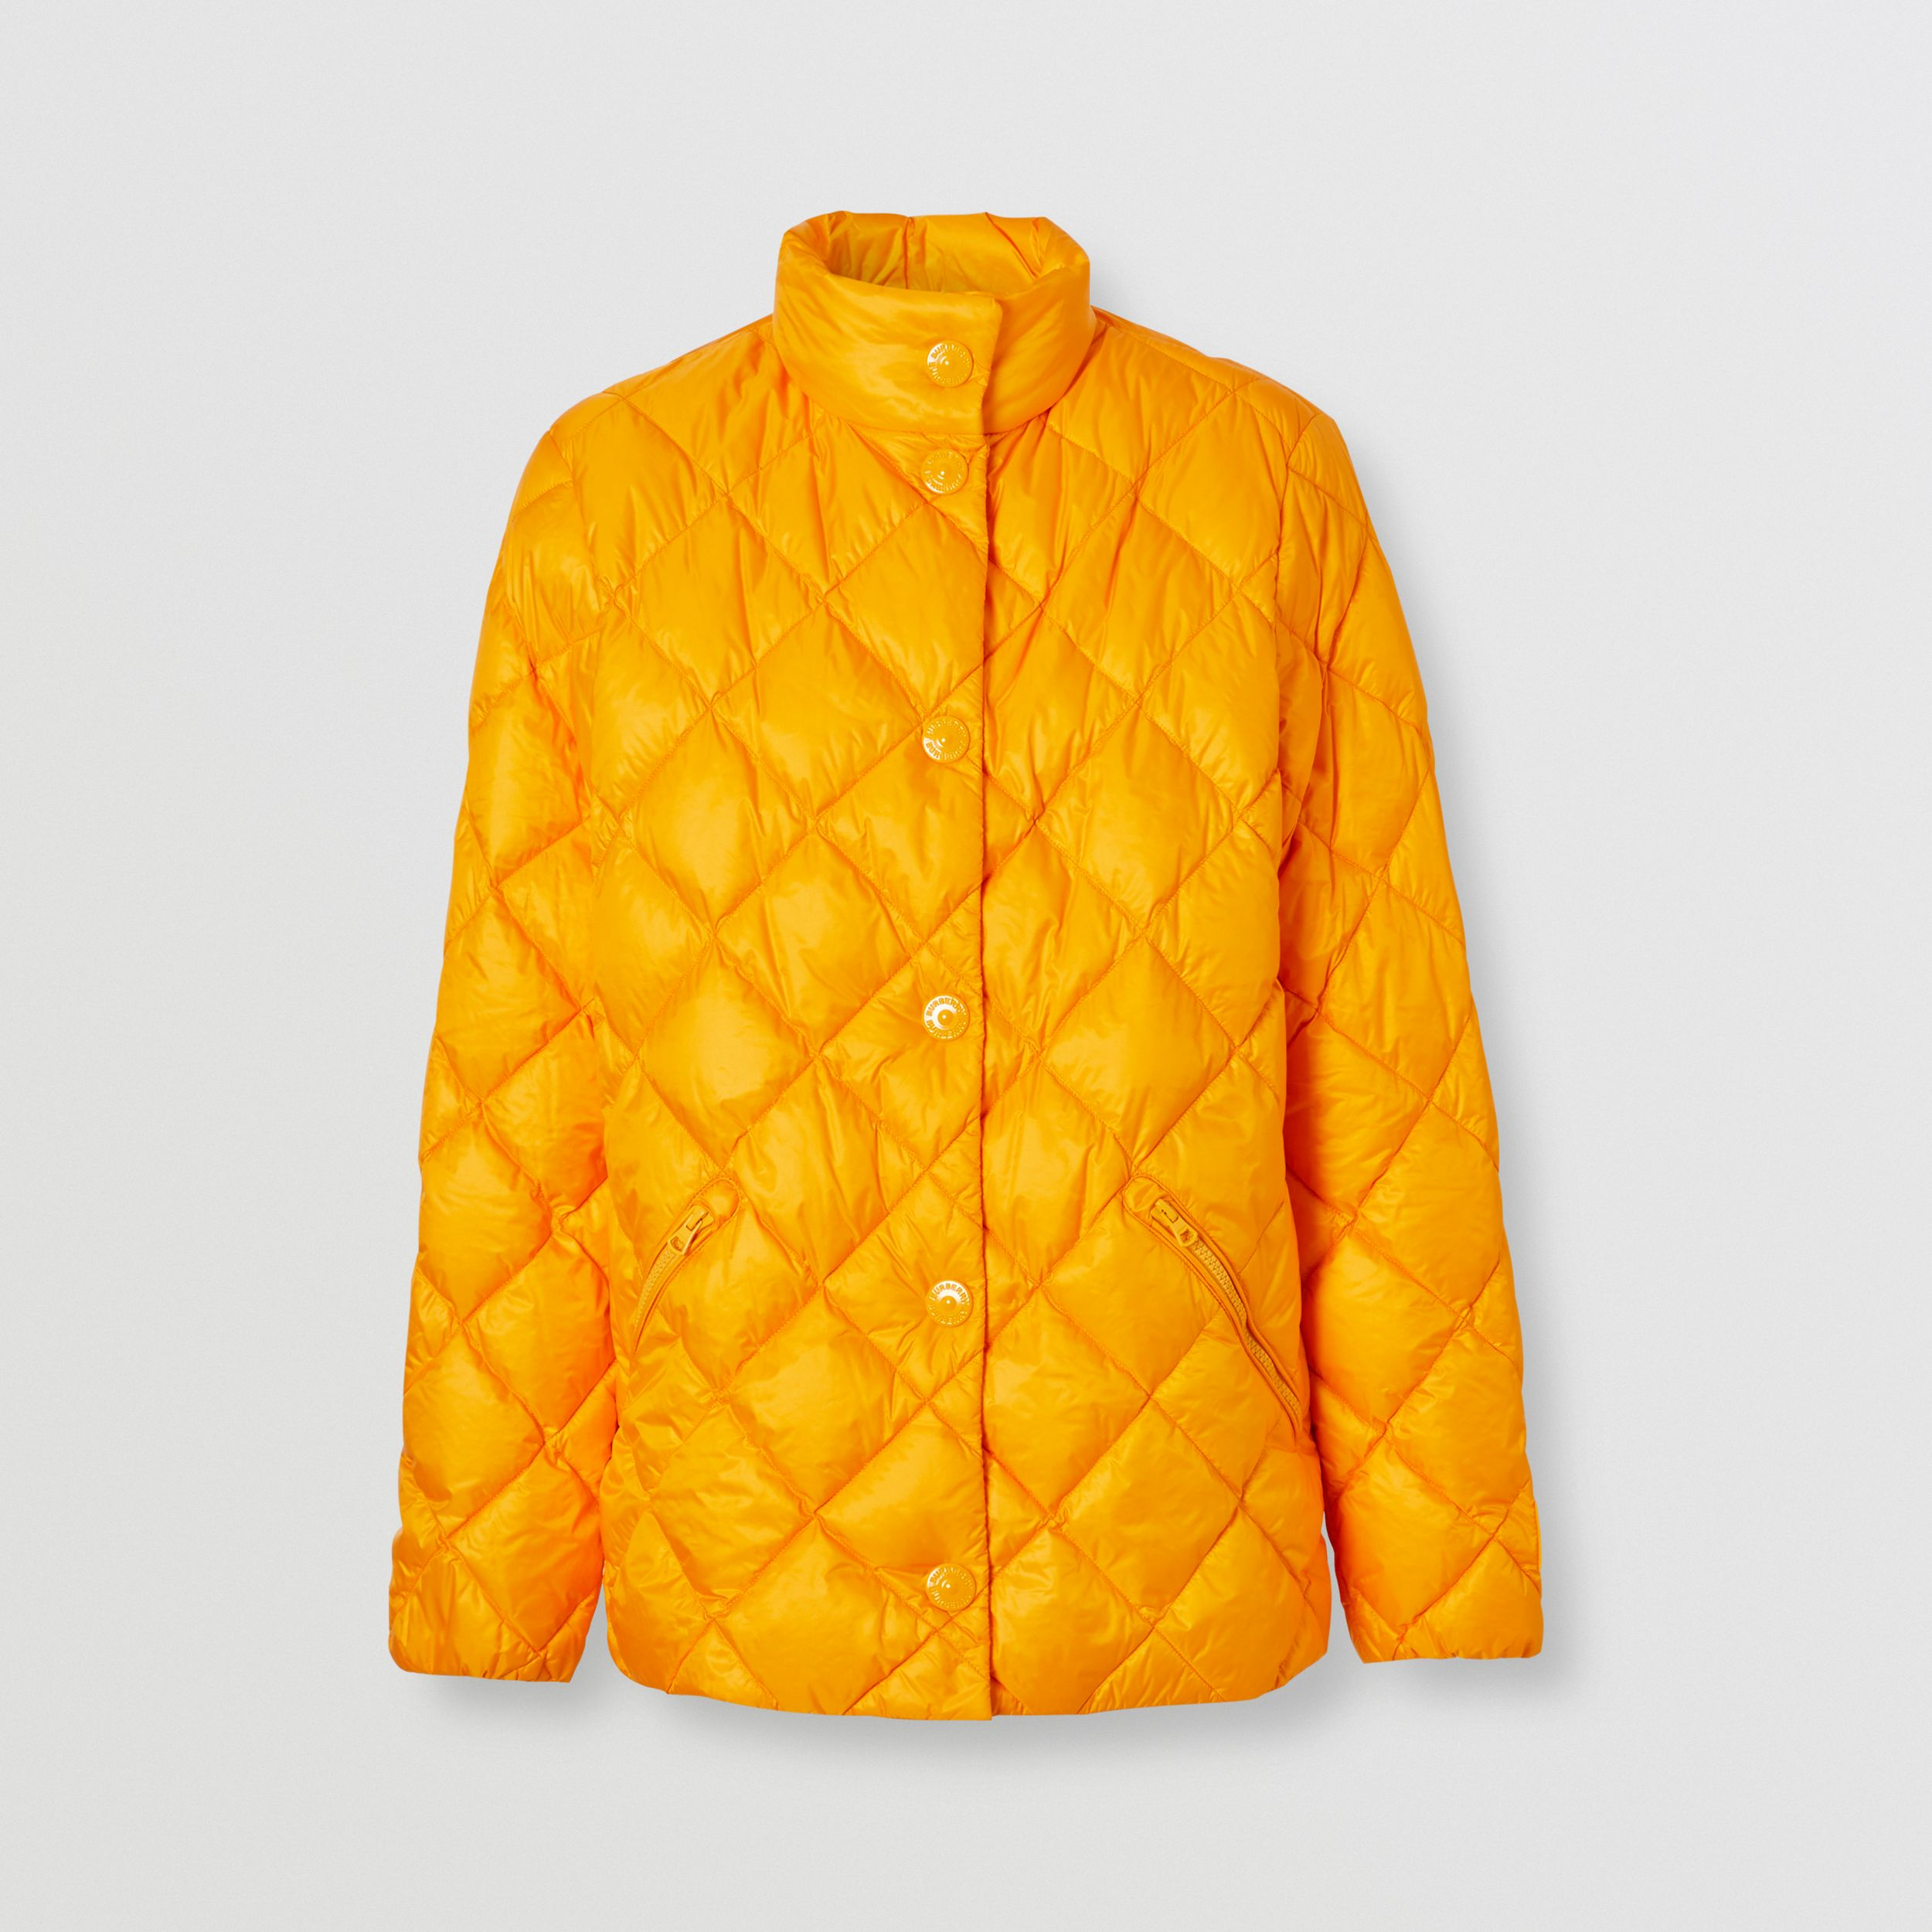 Diamond Quilted Down-filled Jacket in Citrus Orange - Women | Burberry Australia - 4